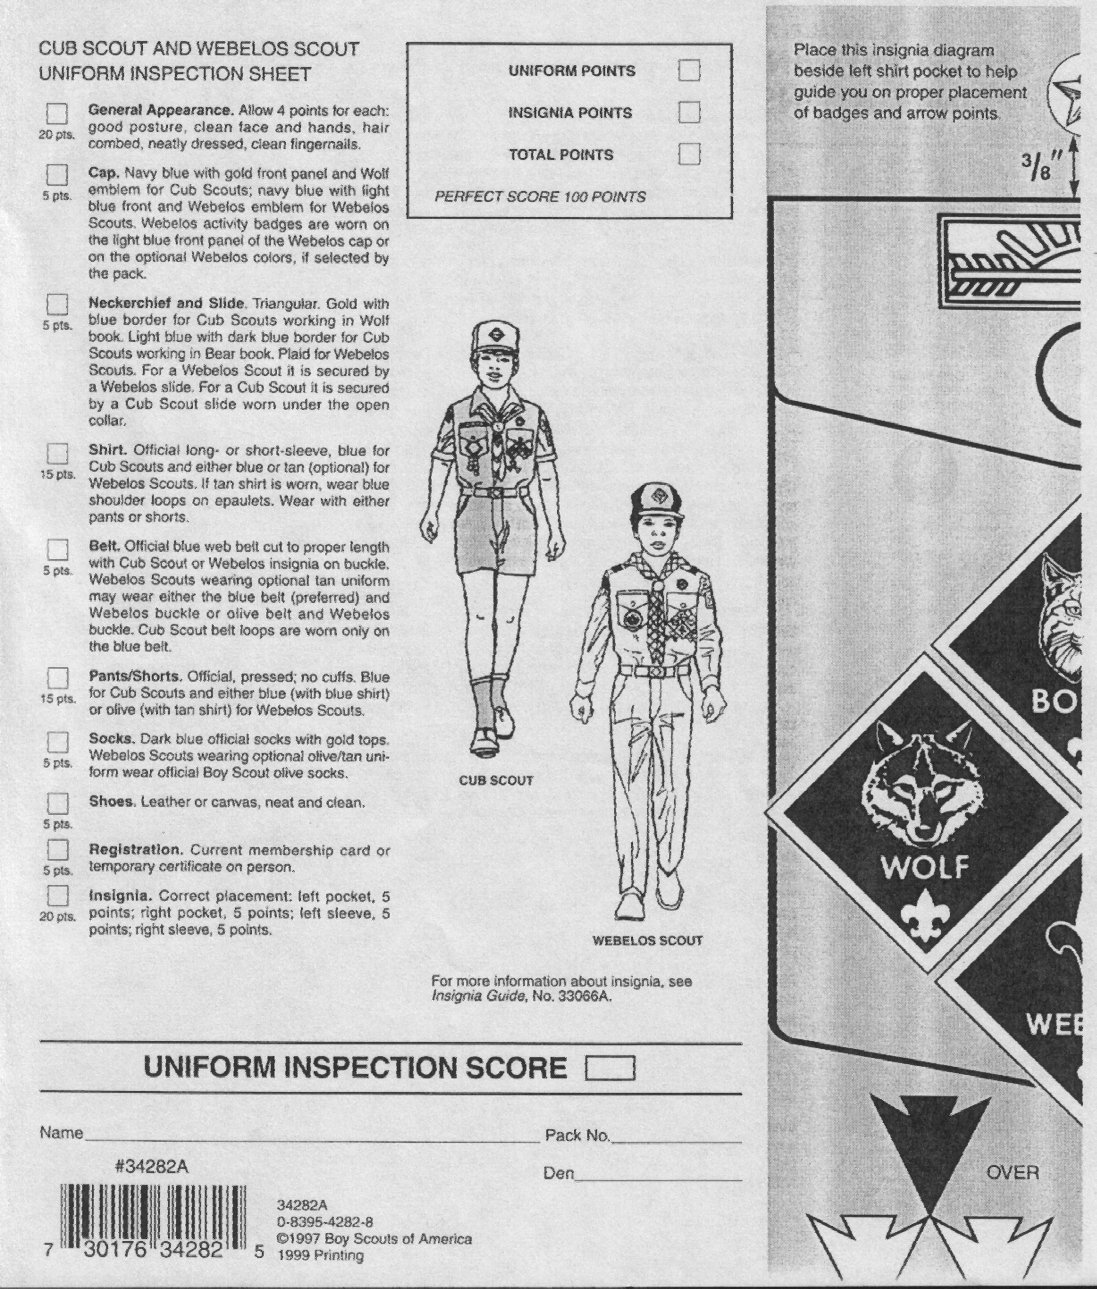 Uniform inspection sheet for Cub Scout and Webelos - USA